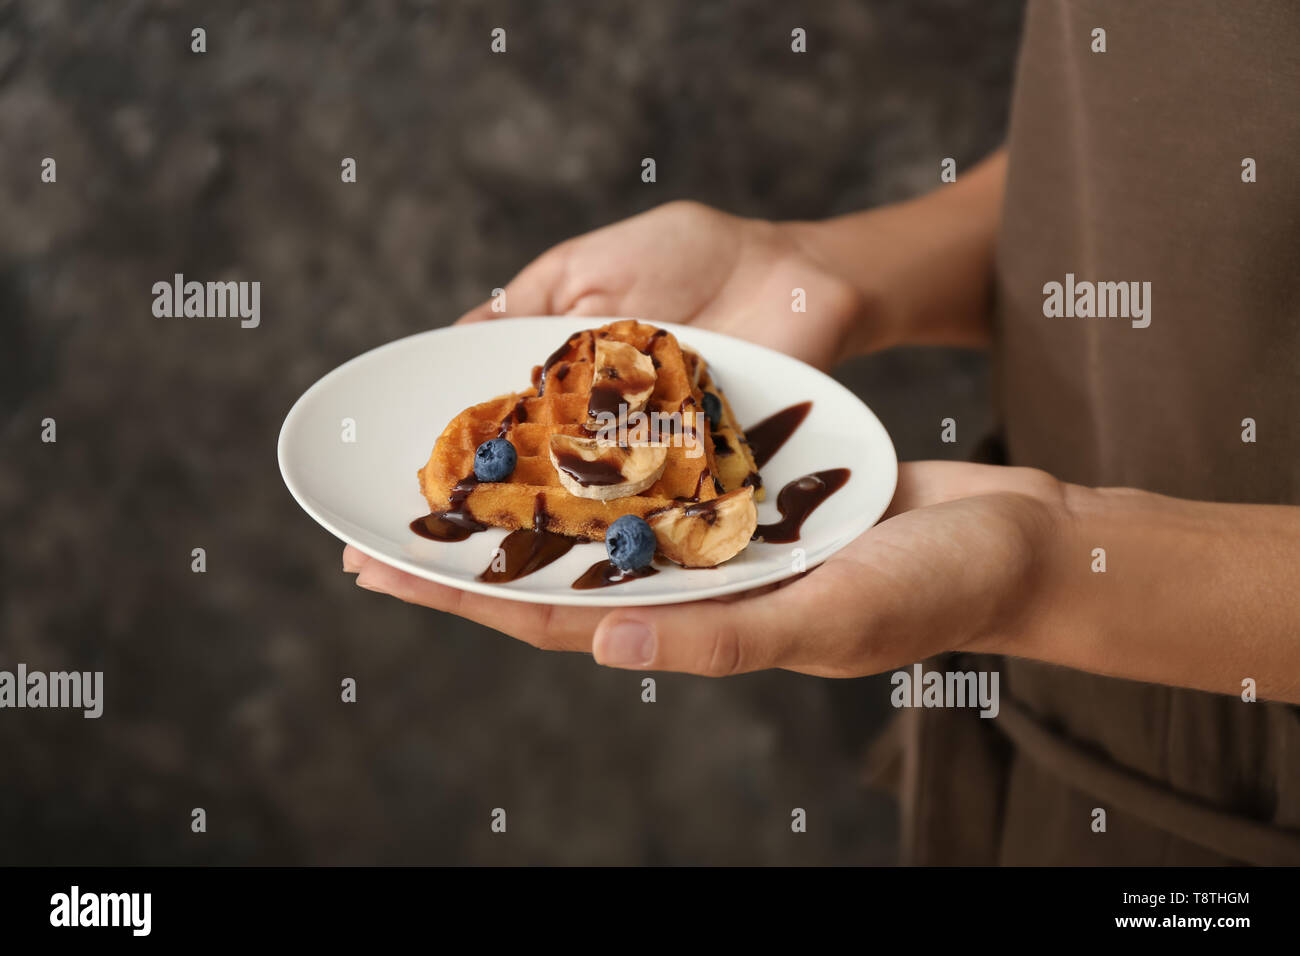 Woman holding plate with tasty waffles and berries on grey background, closeup - Stock Image